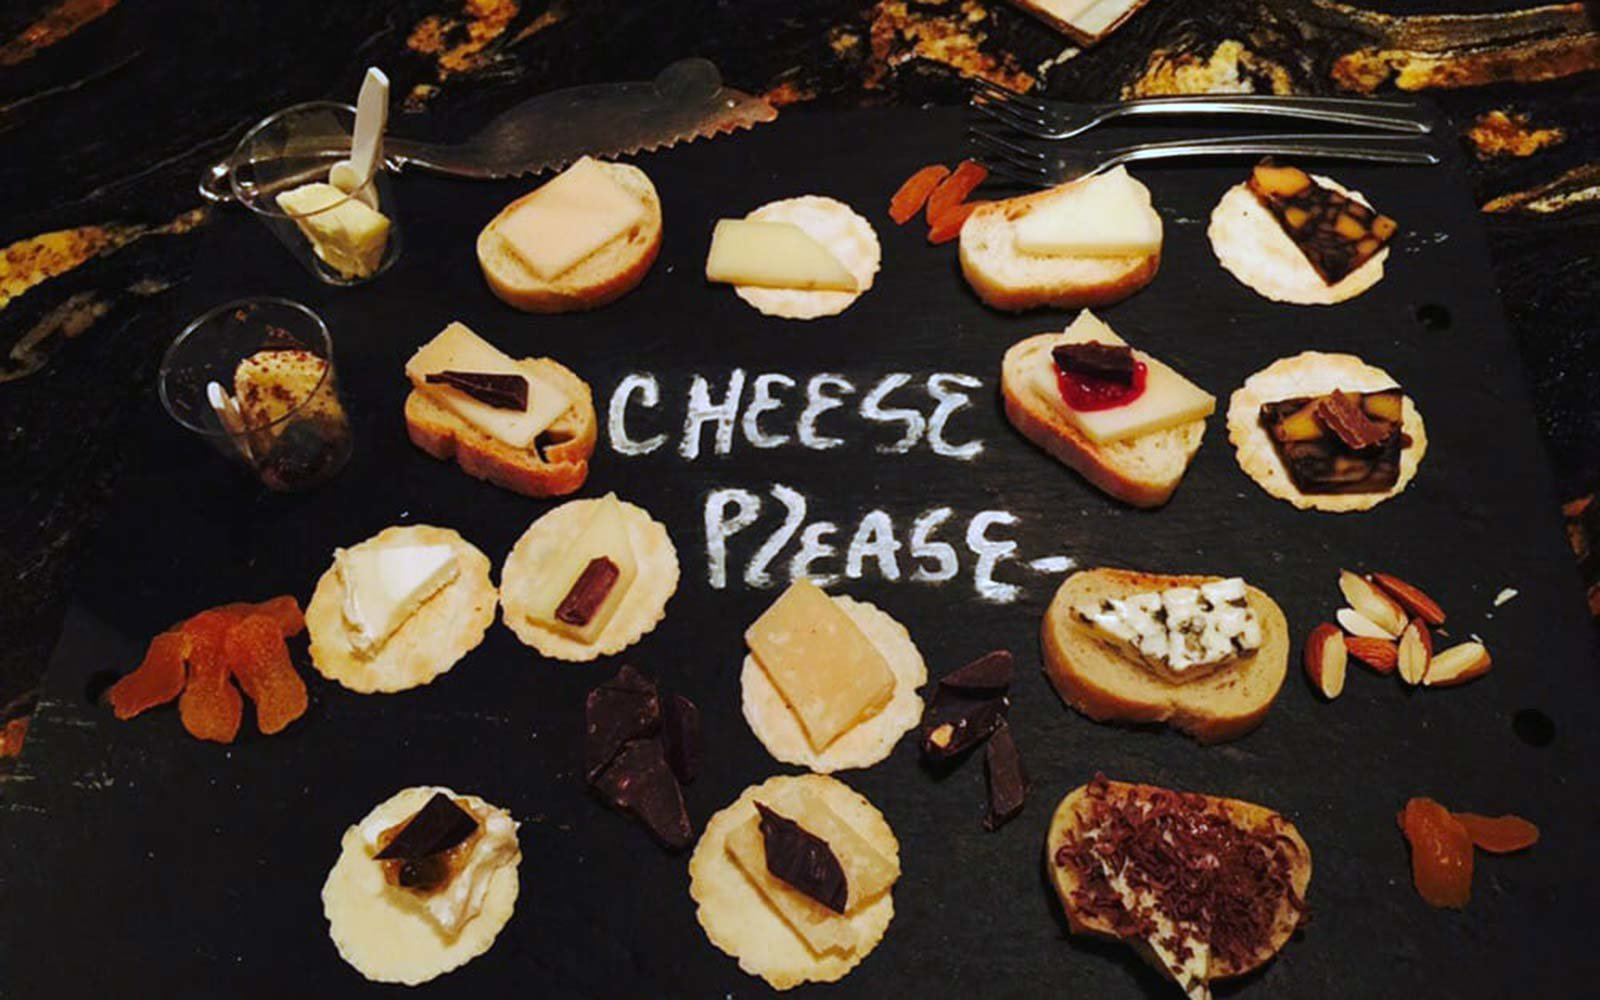 cheese please tampa florida